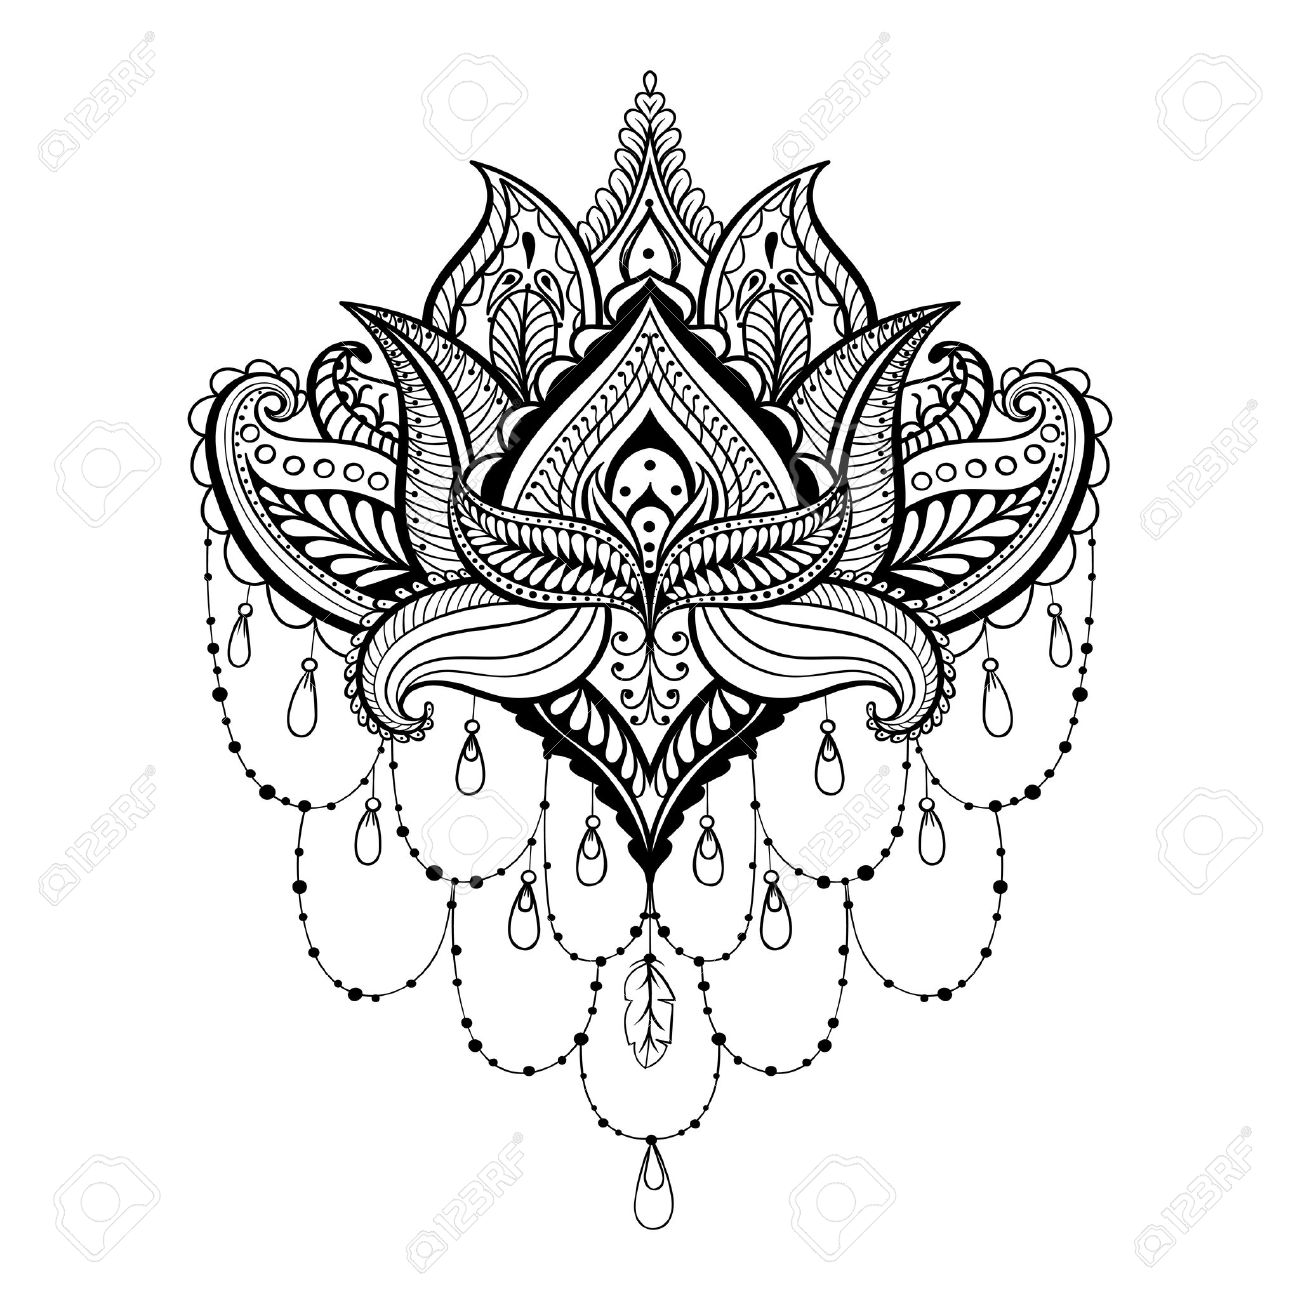 Coloring pages henna - Vector Vector Ornamental Lotus Ethnic Zentangled Henna Tattoo Patterned Indian Paisley For Adult Anti Stress Coloring Pages Hand Drawn Illustration In